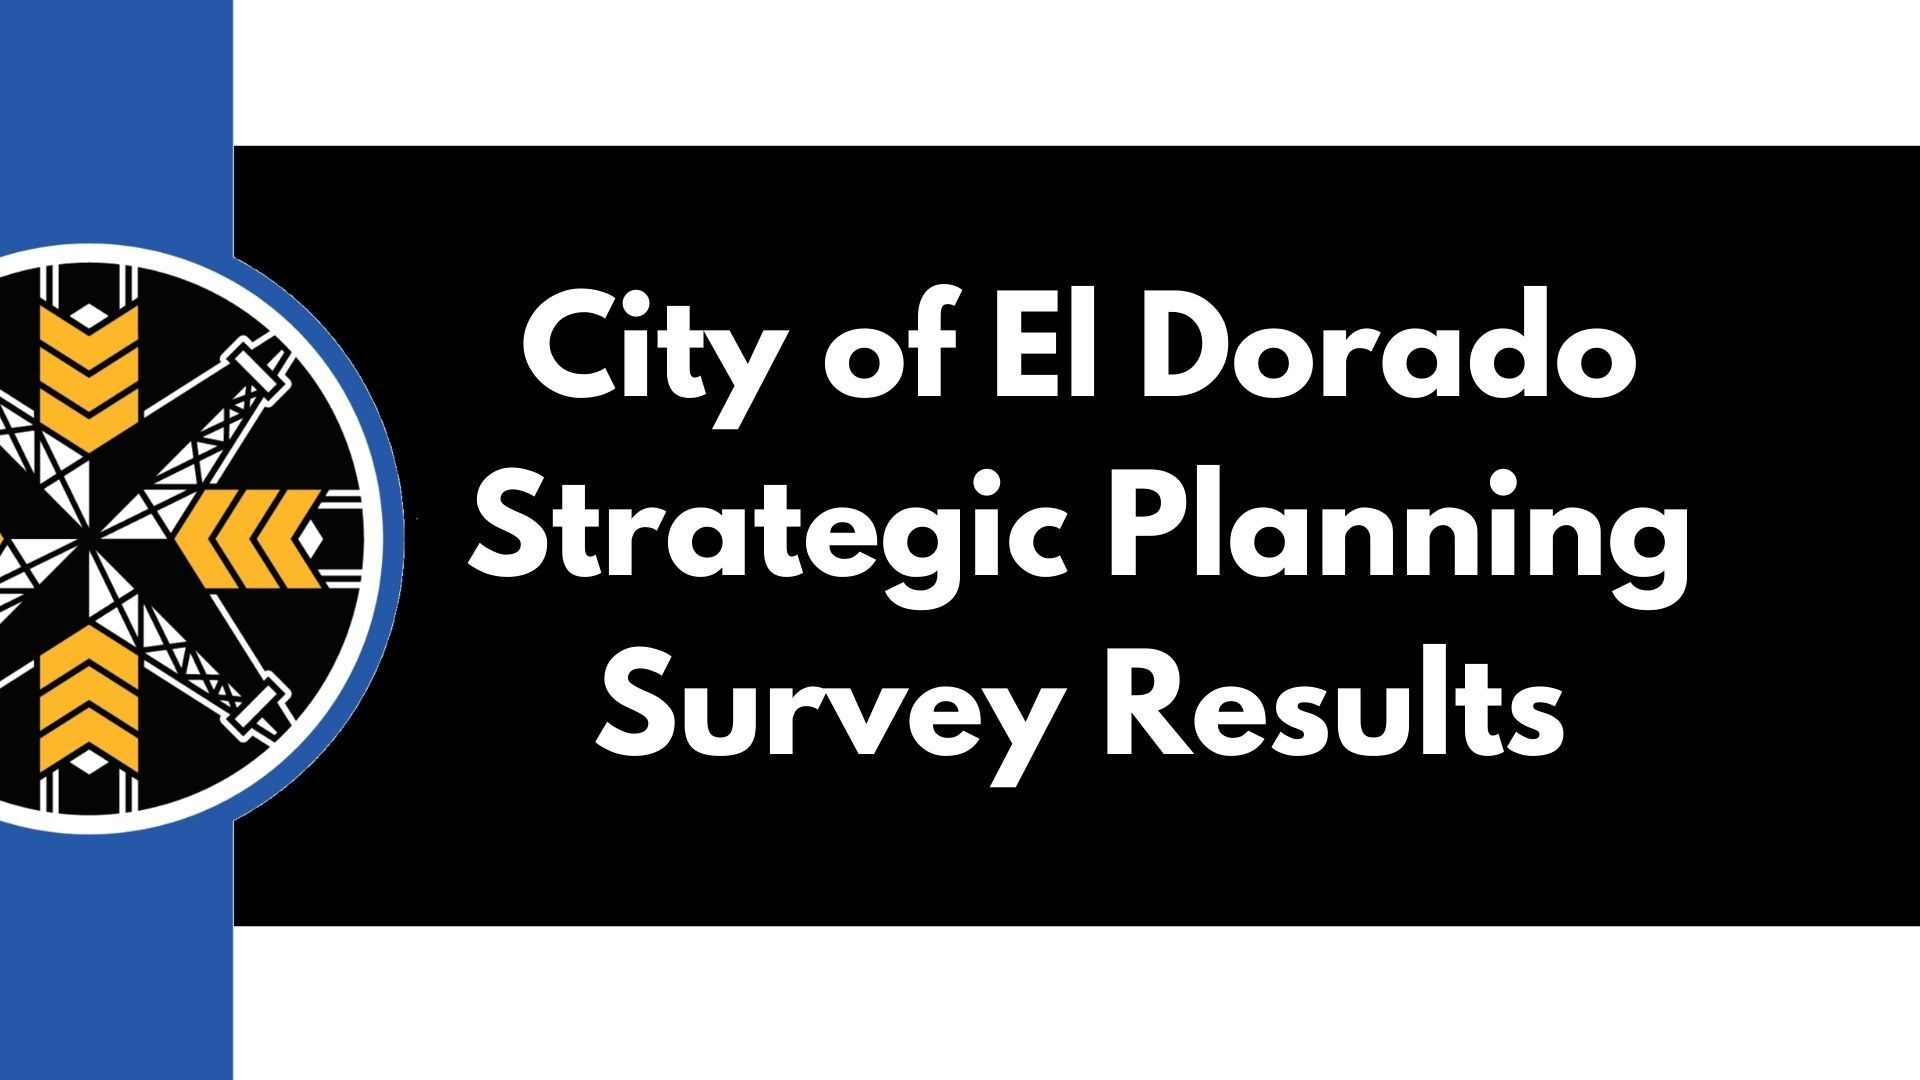 City of El Dorado Survey